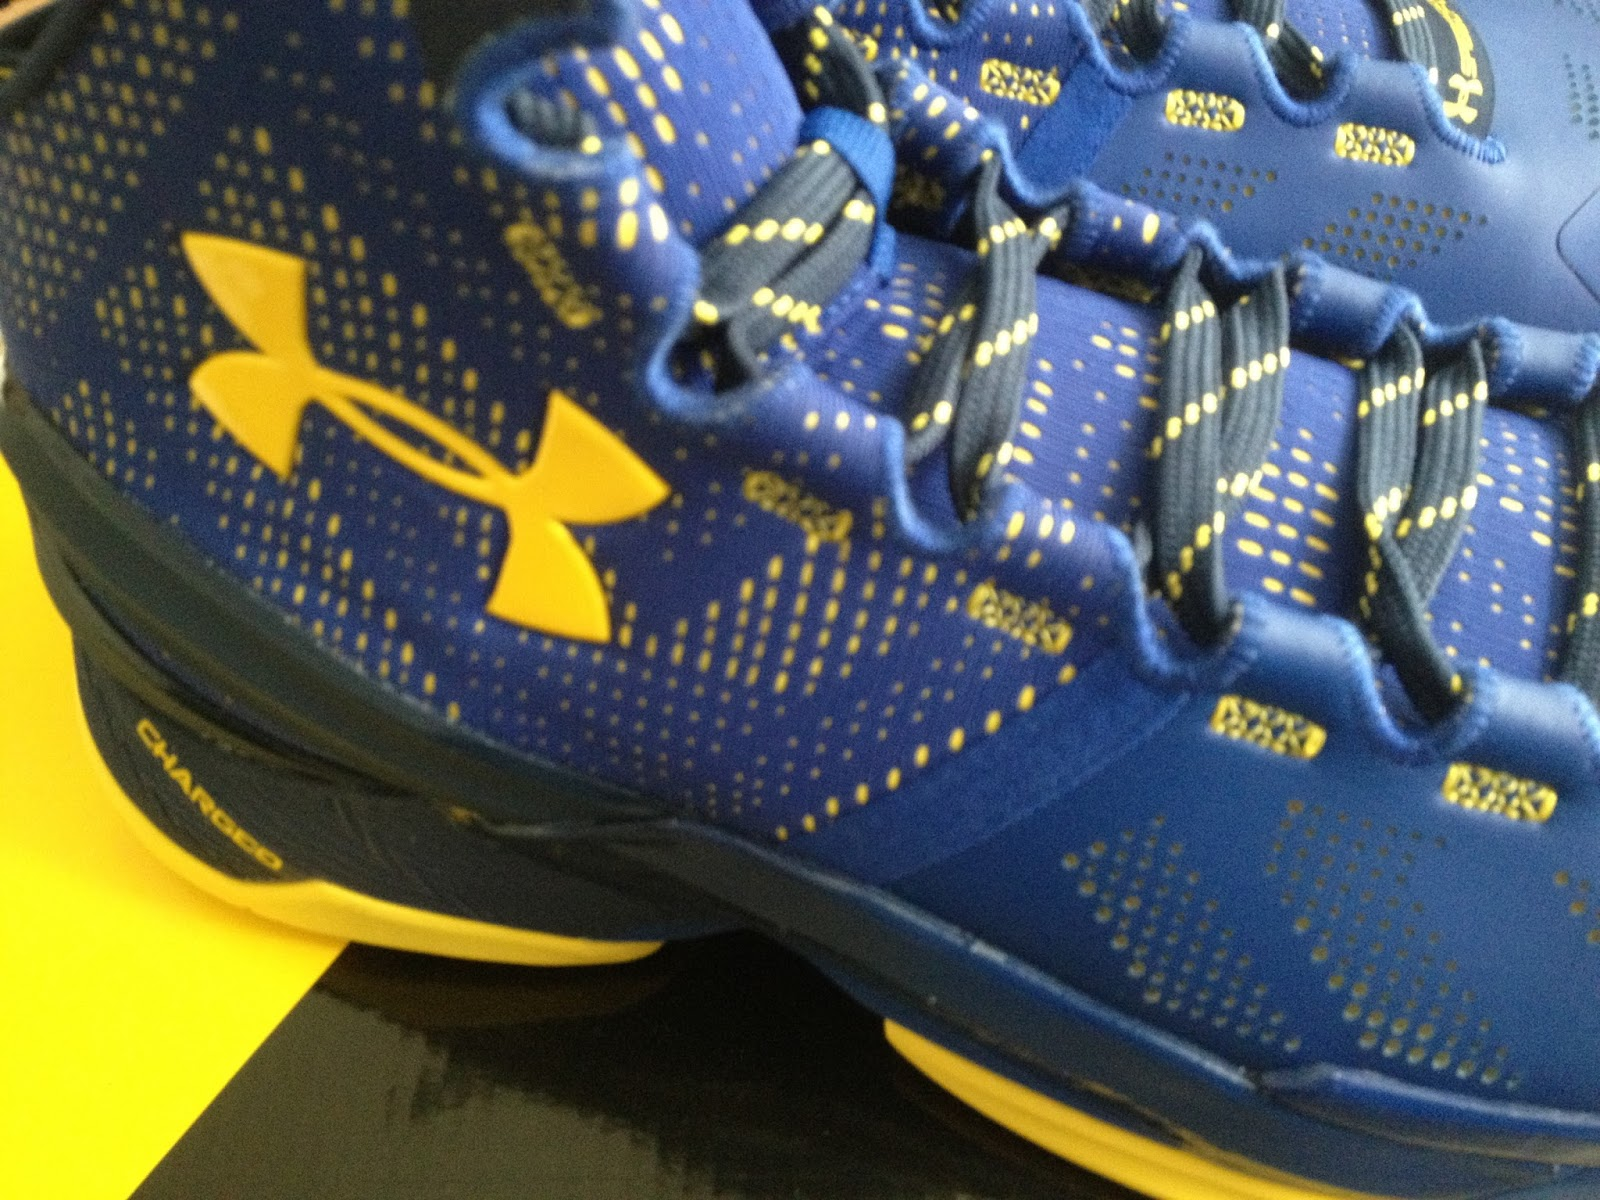 fe8b3abdb7e2 Under Armour Curry 2 now available at Everest Style Mart Cebu ~ Everest  Style Mart Shoe Store